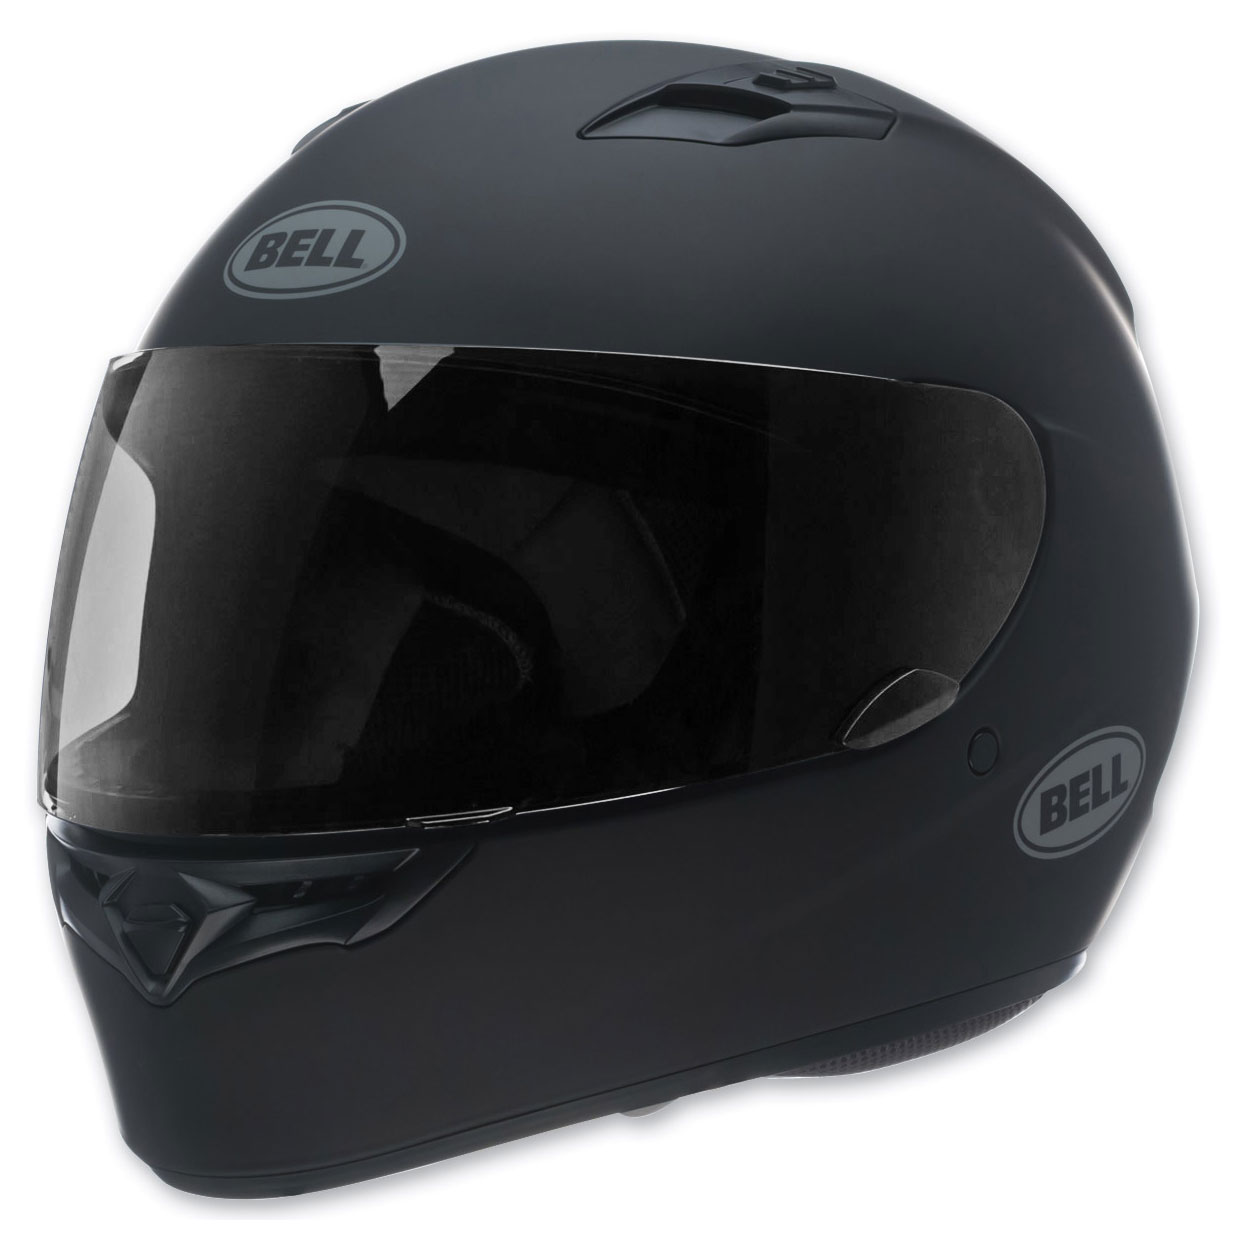 Bell Full Face Helmet >> Bell Solid Matte Black Qualifier Full Face Helmet 7049223